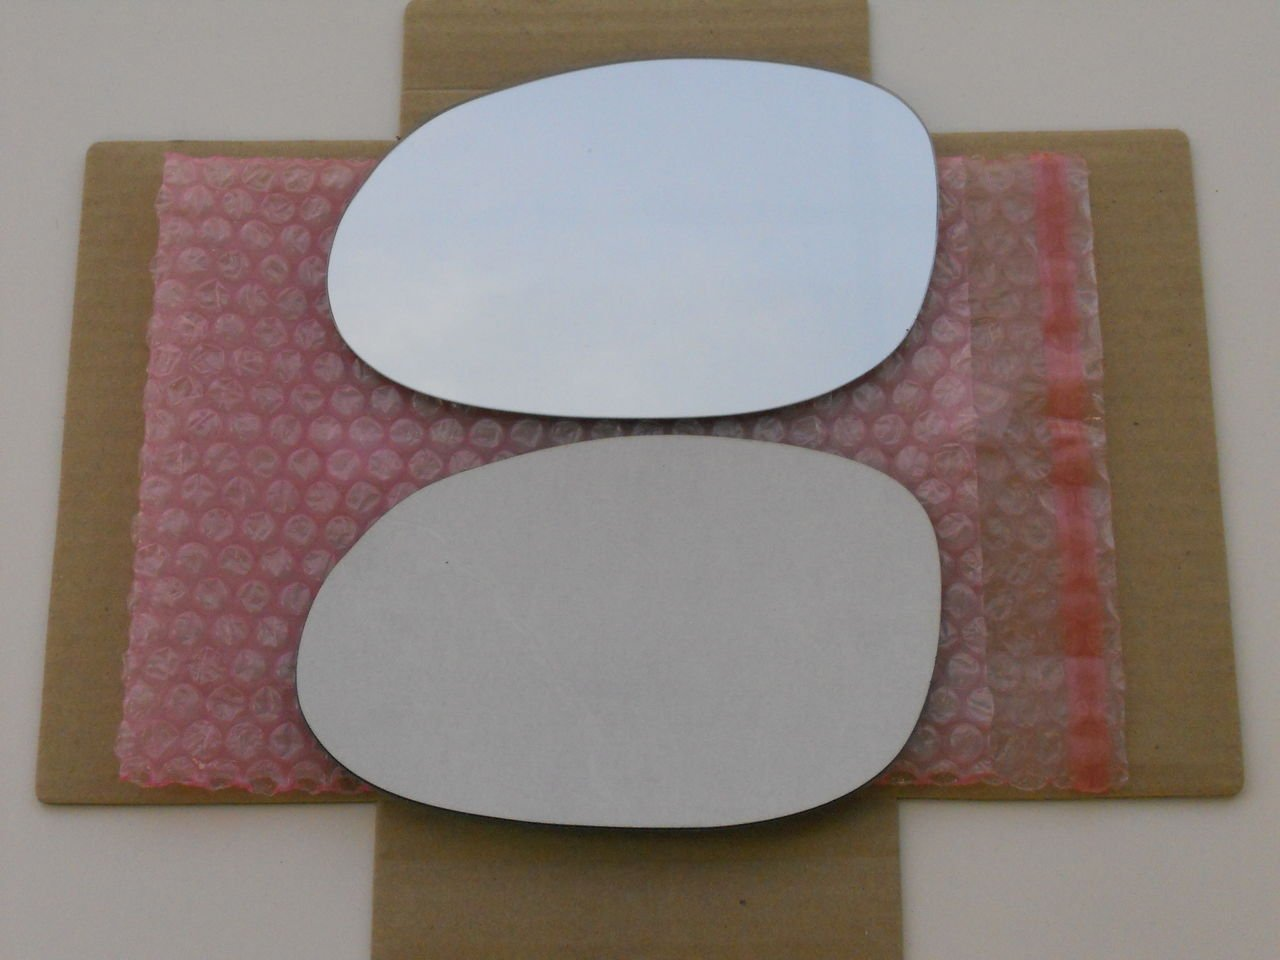 New Replacement Mirror Glass with FULL SIZE ADHESIVE for CONCORDE 300M LHS INTREPID NEON Driver Side View Left LH CAR MIRROR BAZAR